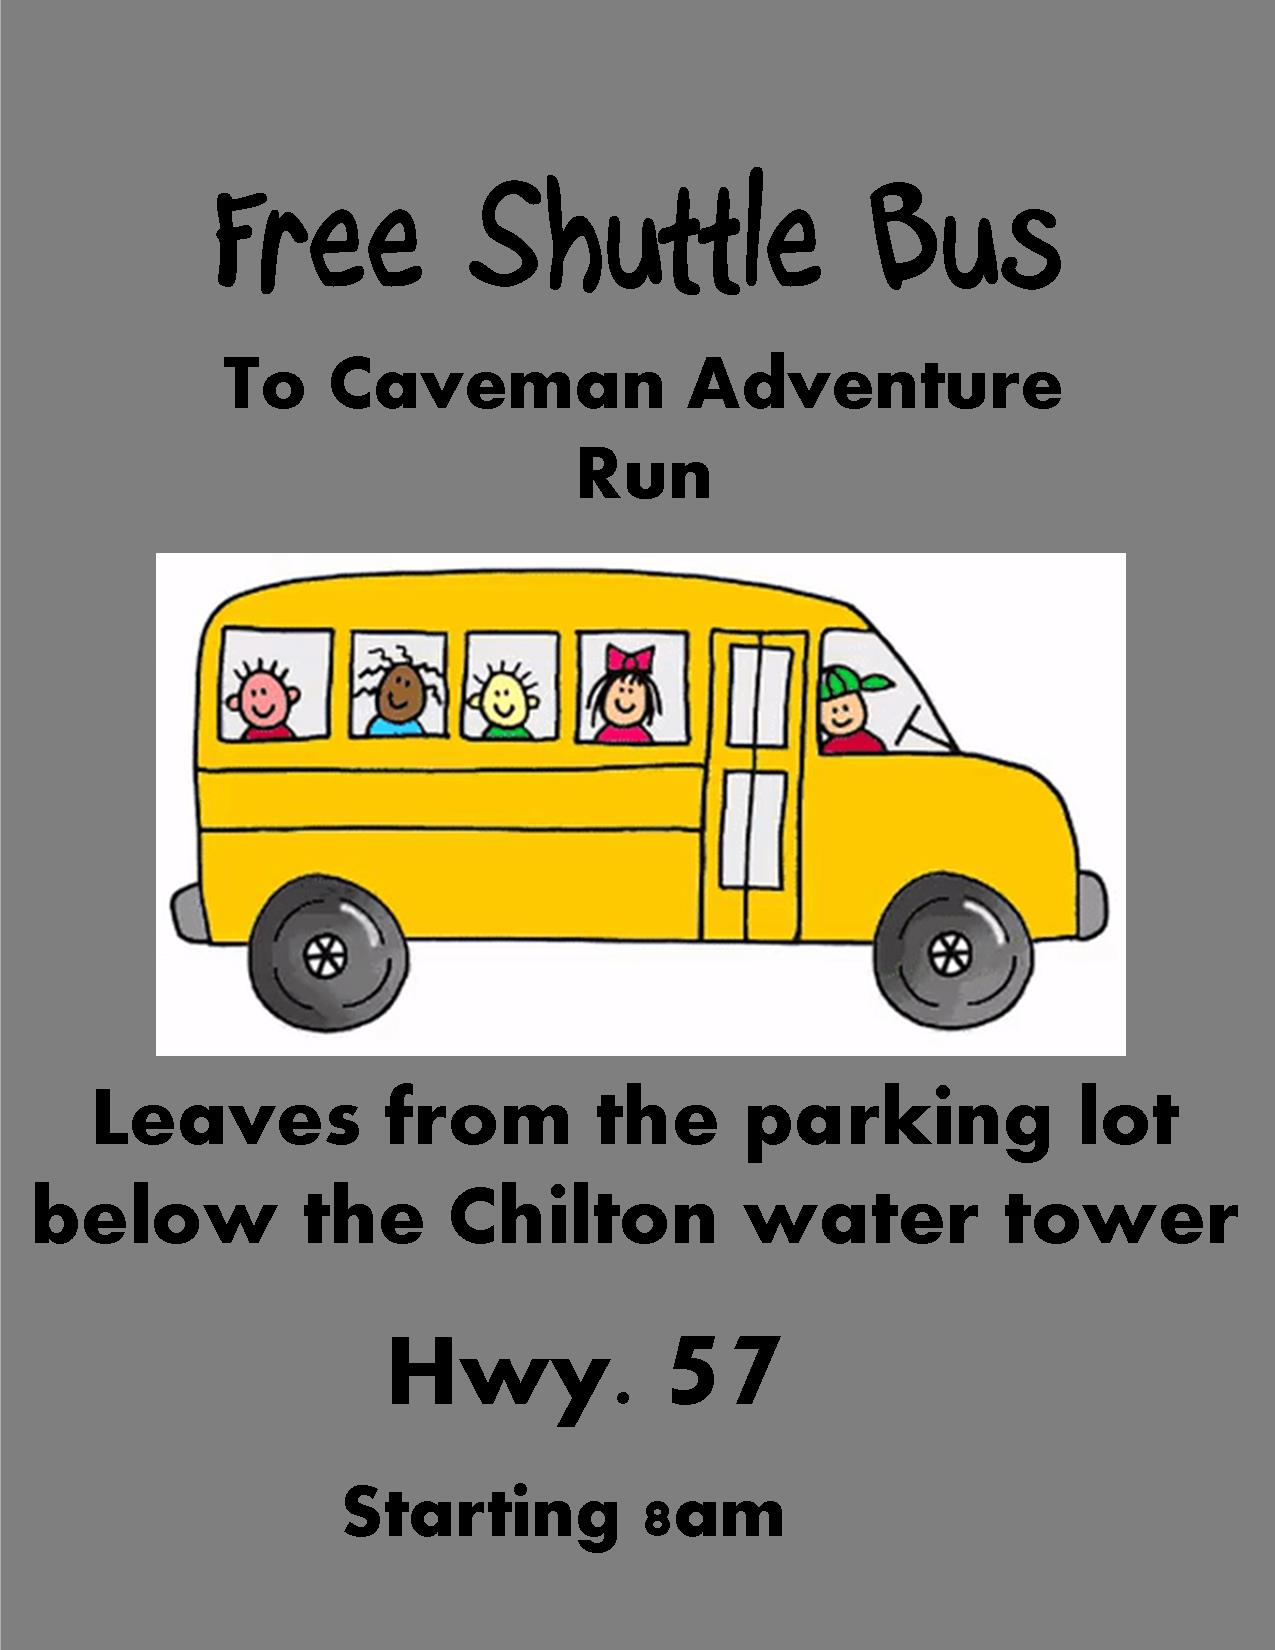 free shuttle bus poster for caveman adventure run showing a picture of a bus with kids on it.